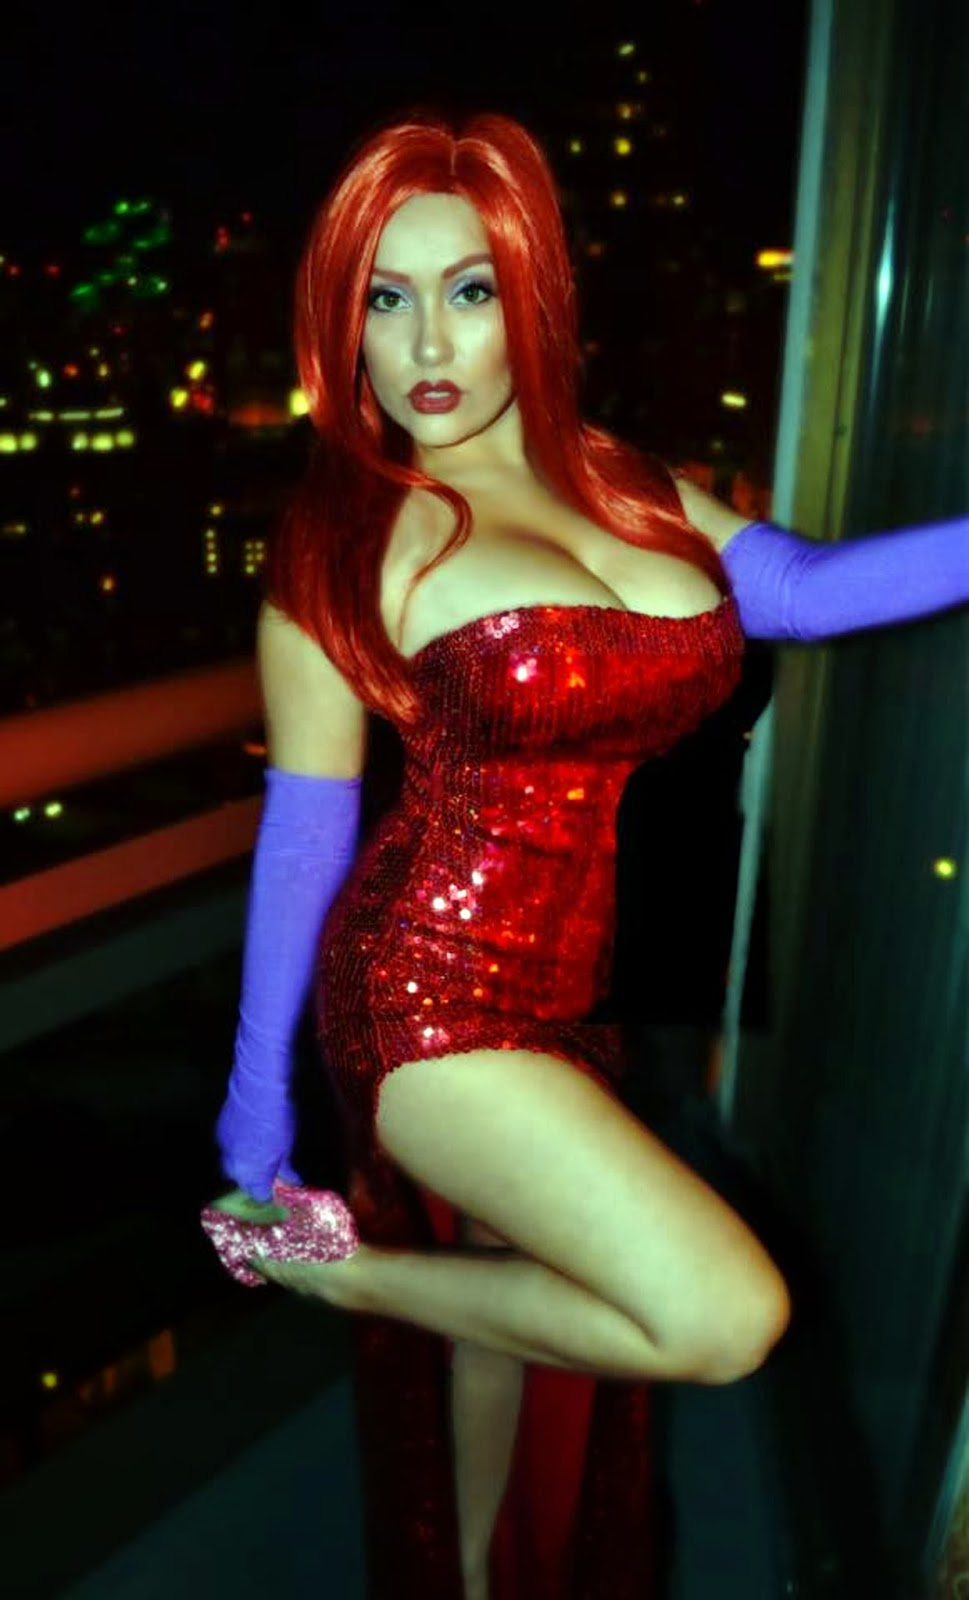 hasslein blog getting into character part seven jean gomez jean as jessica rabbit she s not bad she s just drawn that way